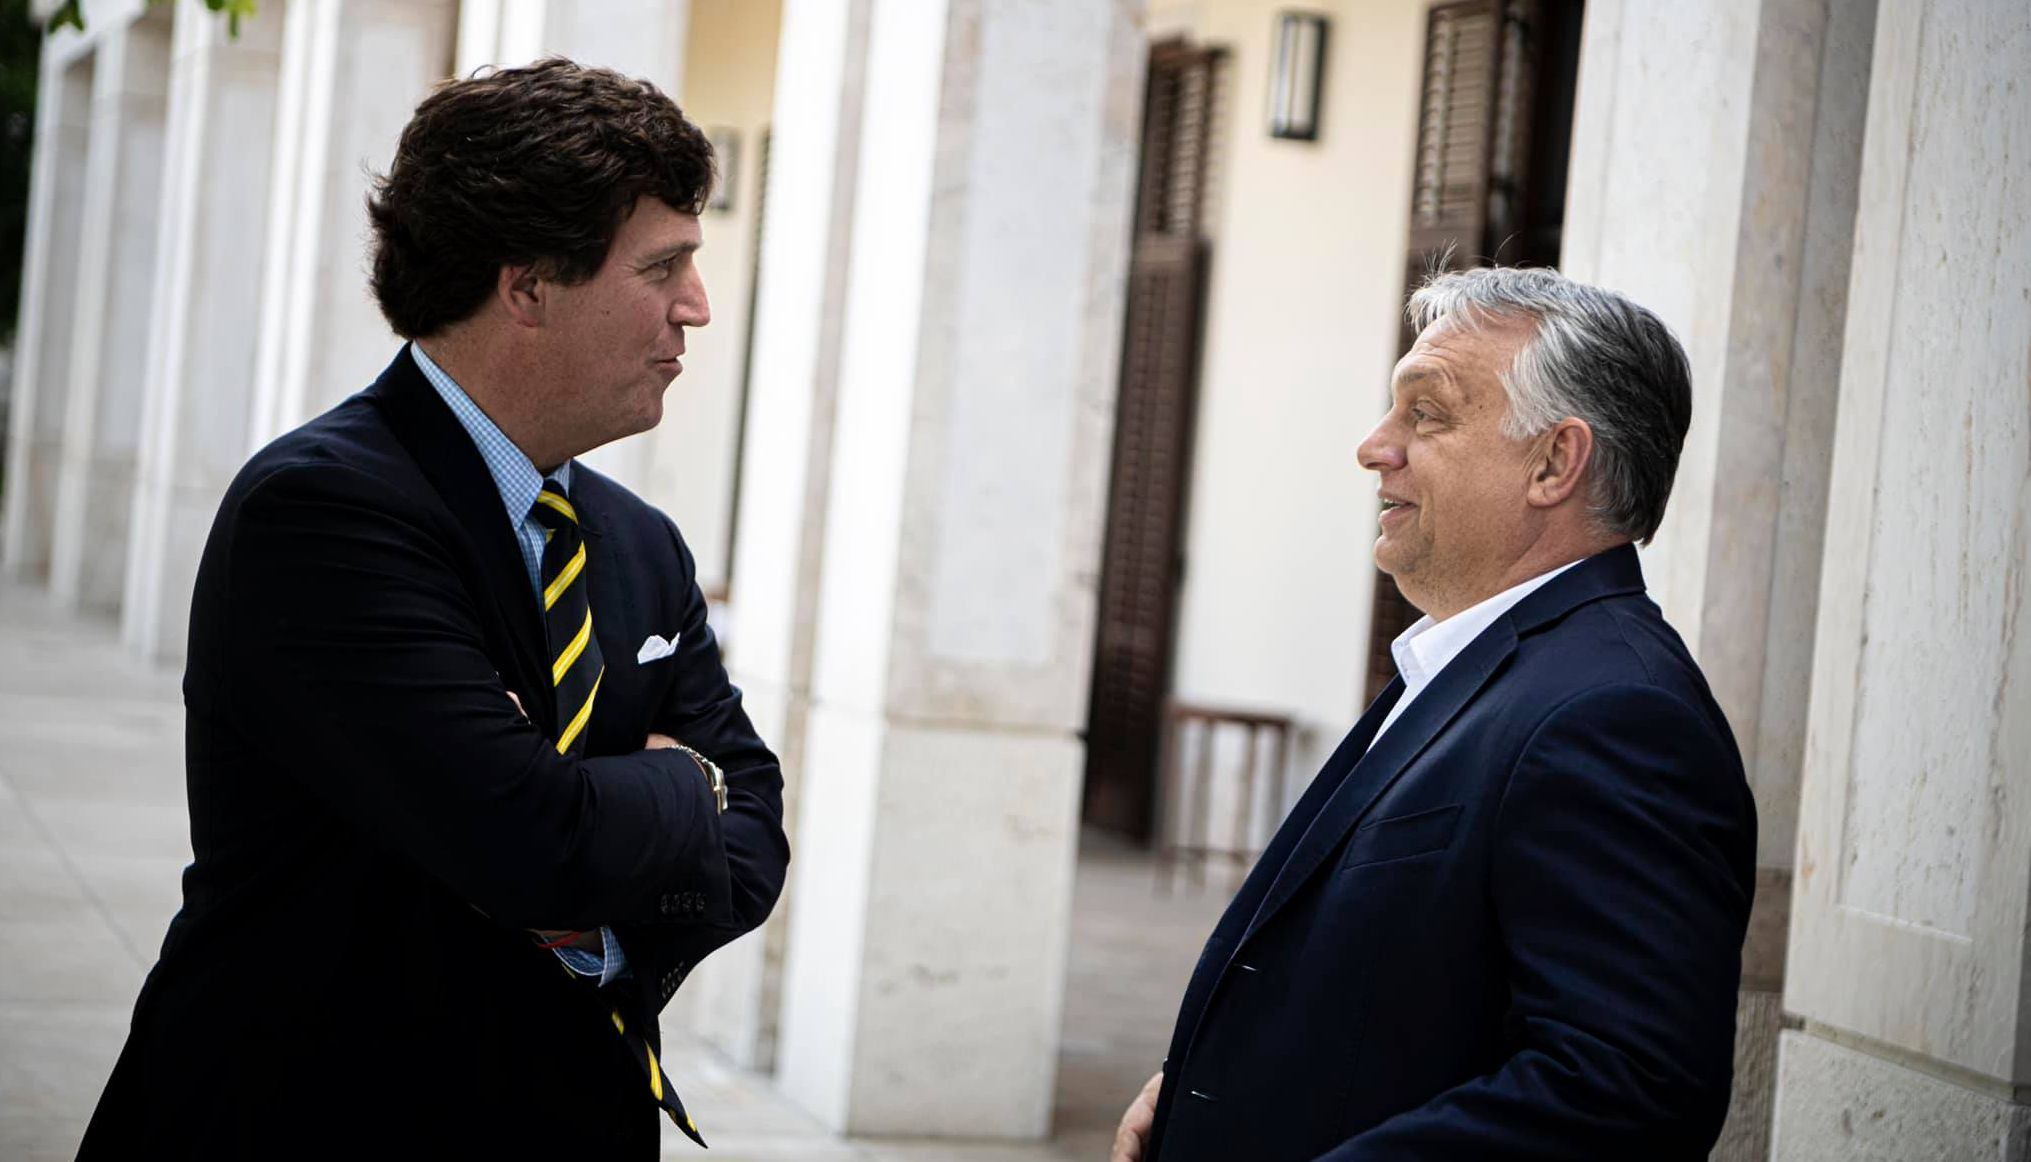 Press Roundup: Tucker Carlson's Visit to Hungary and His Interview with PM Orbán